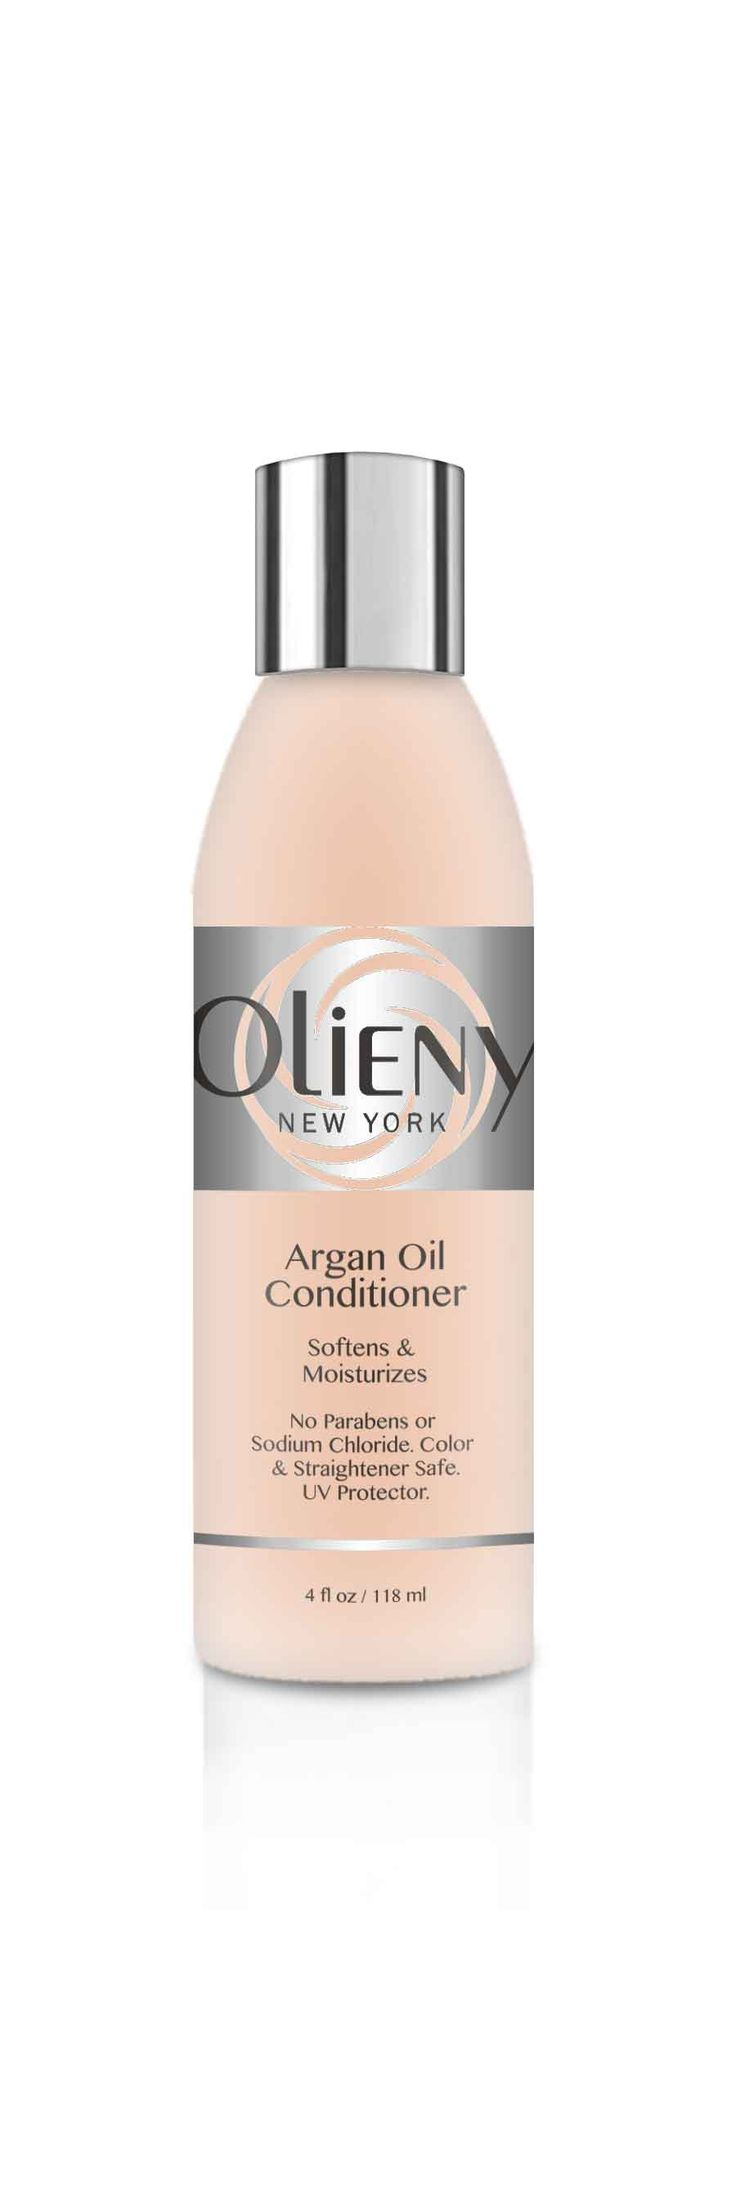 This creamy hydrating conditioner, infused with the fi nest Moroccan Argan Oil, gently detangles and moisturizes without weighing hair  down. Rich in vitamins and antioxidants to help strengthen dry, brittle hair. Calms frizzy ends. Argan Oil is a natural UV protectant and  hydrator. Great for soft curls and extensions. Safe for colored, straightened and chemically-treated hair.